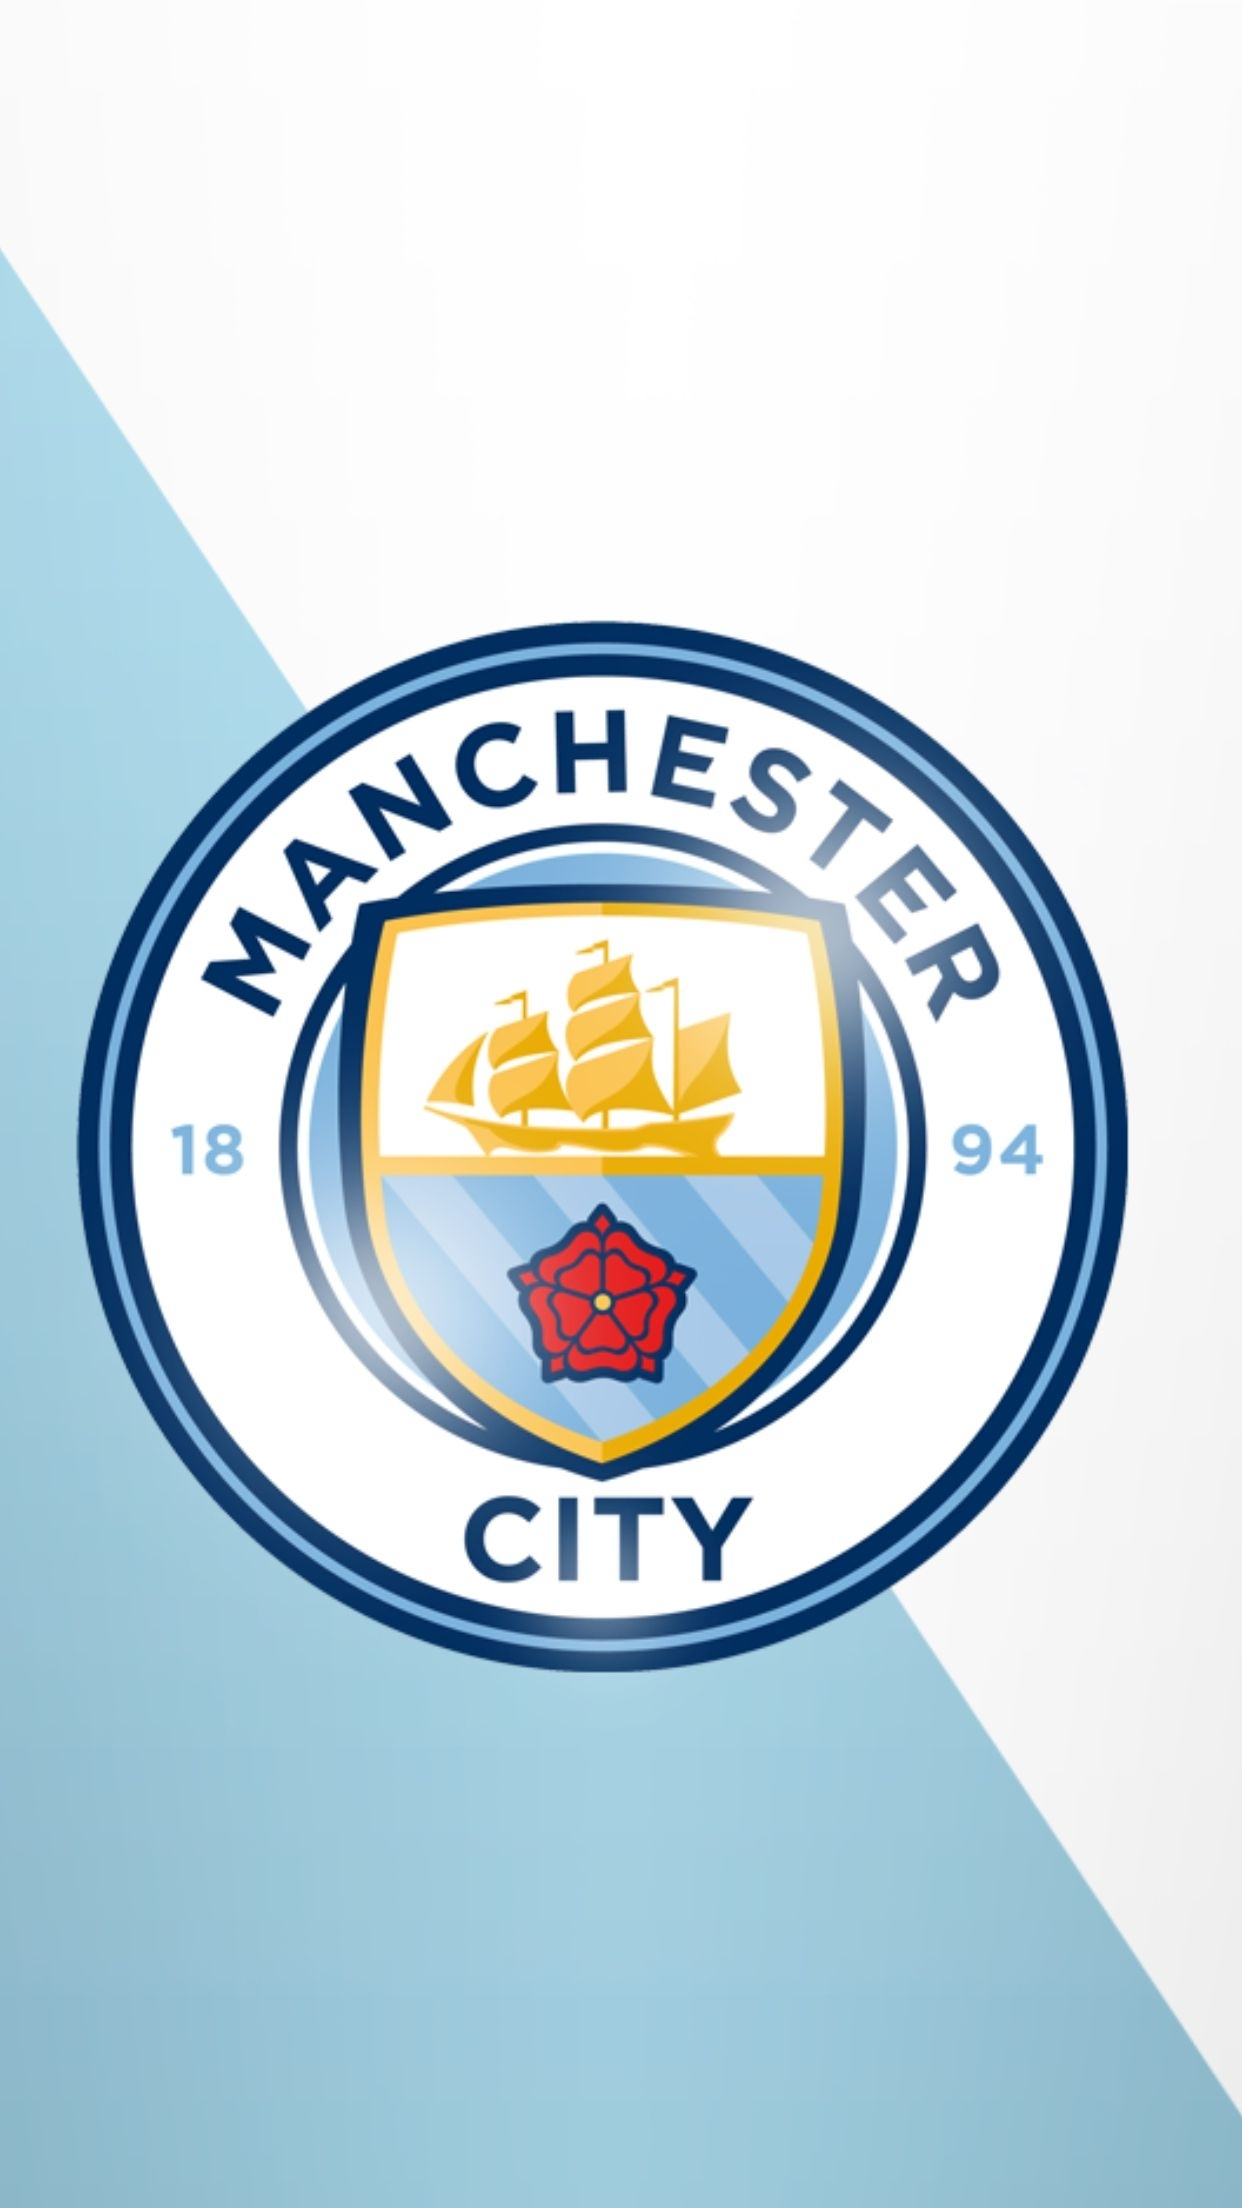 10 Best Manchester City Iphone Wallpaper FULL HD 1080p For PC Background